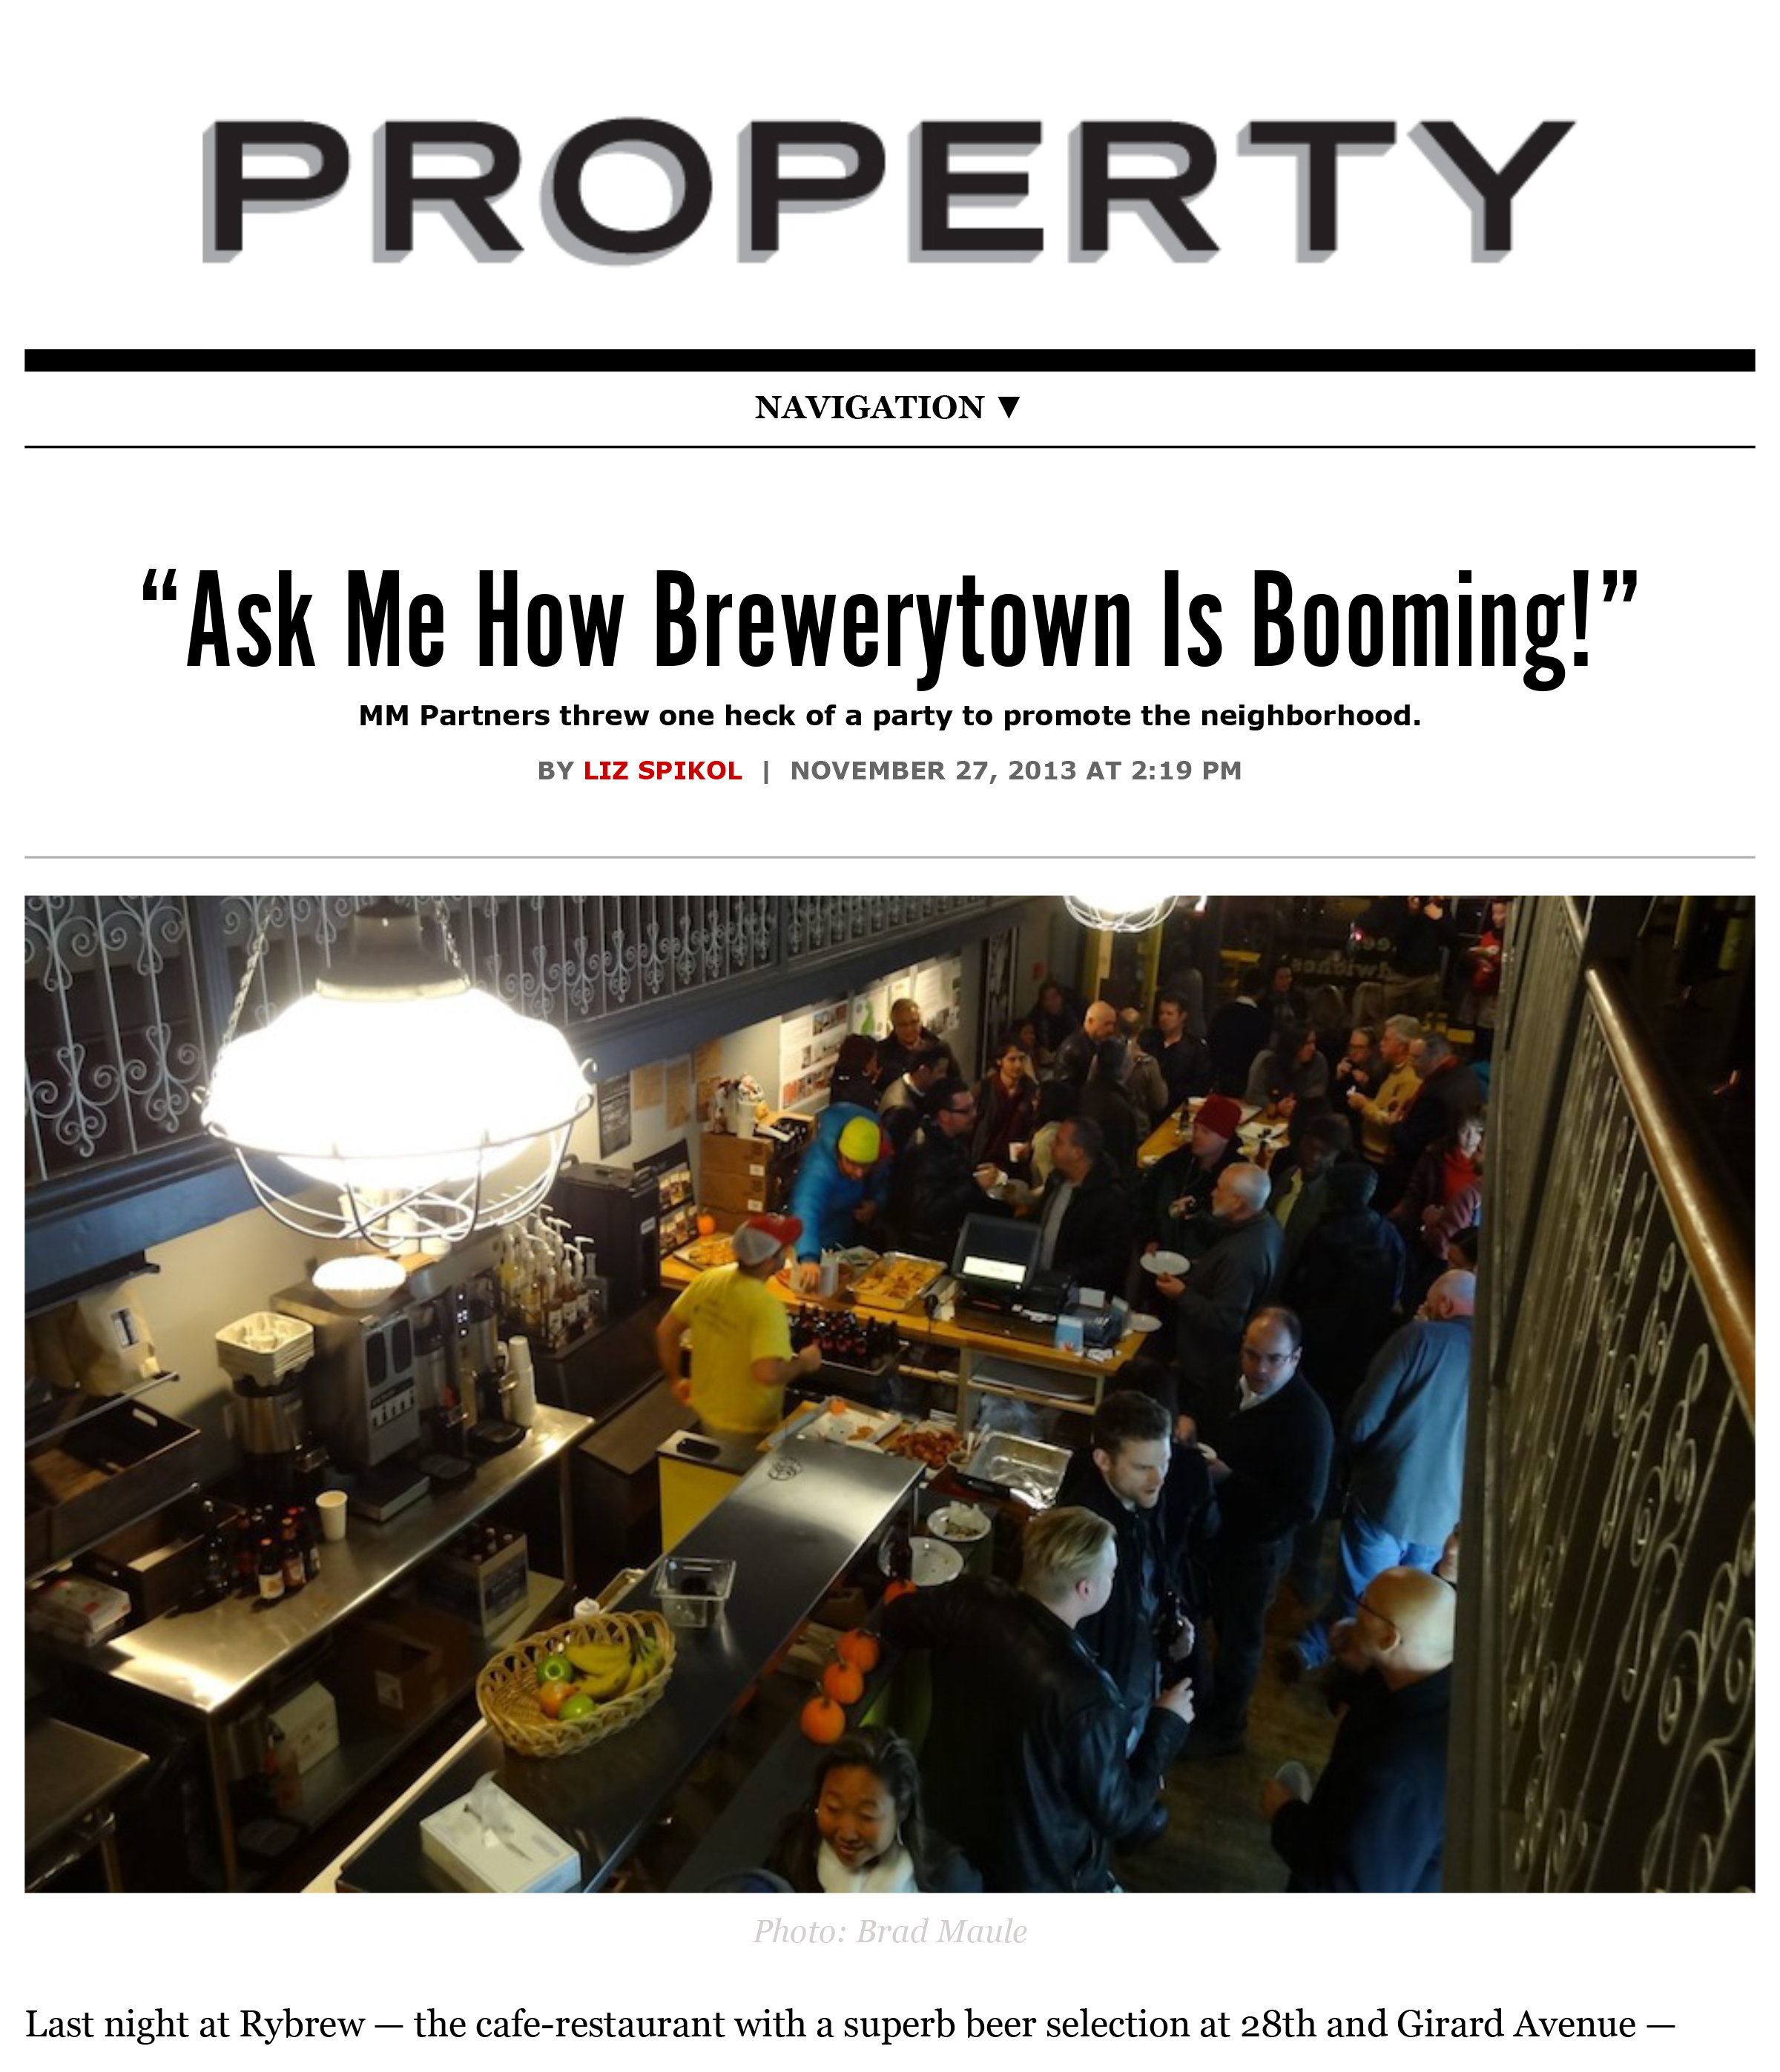 %22Ask Me How Brewerytown Is Booming!%22-1.jpg